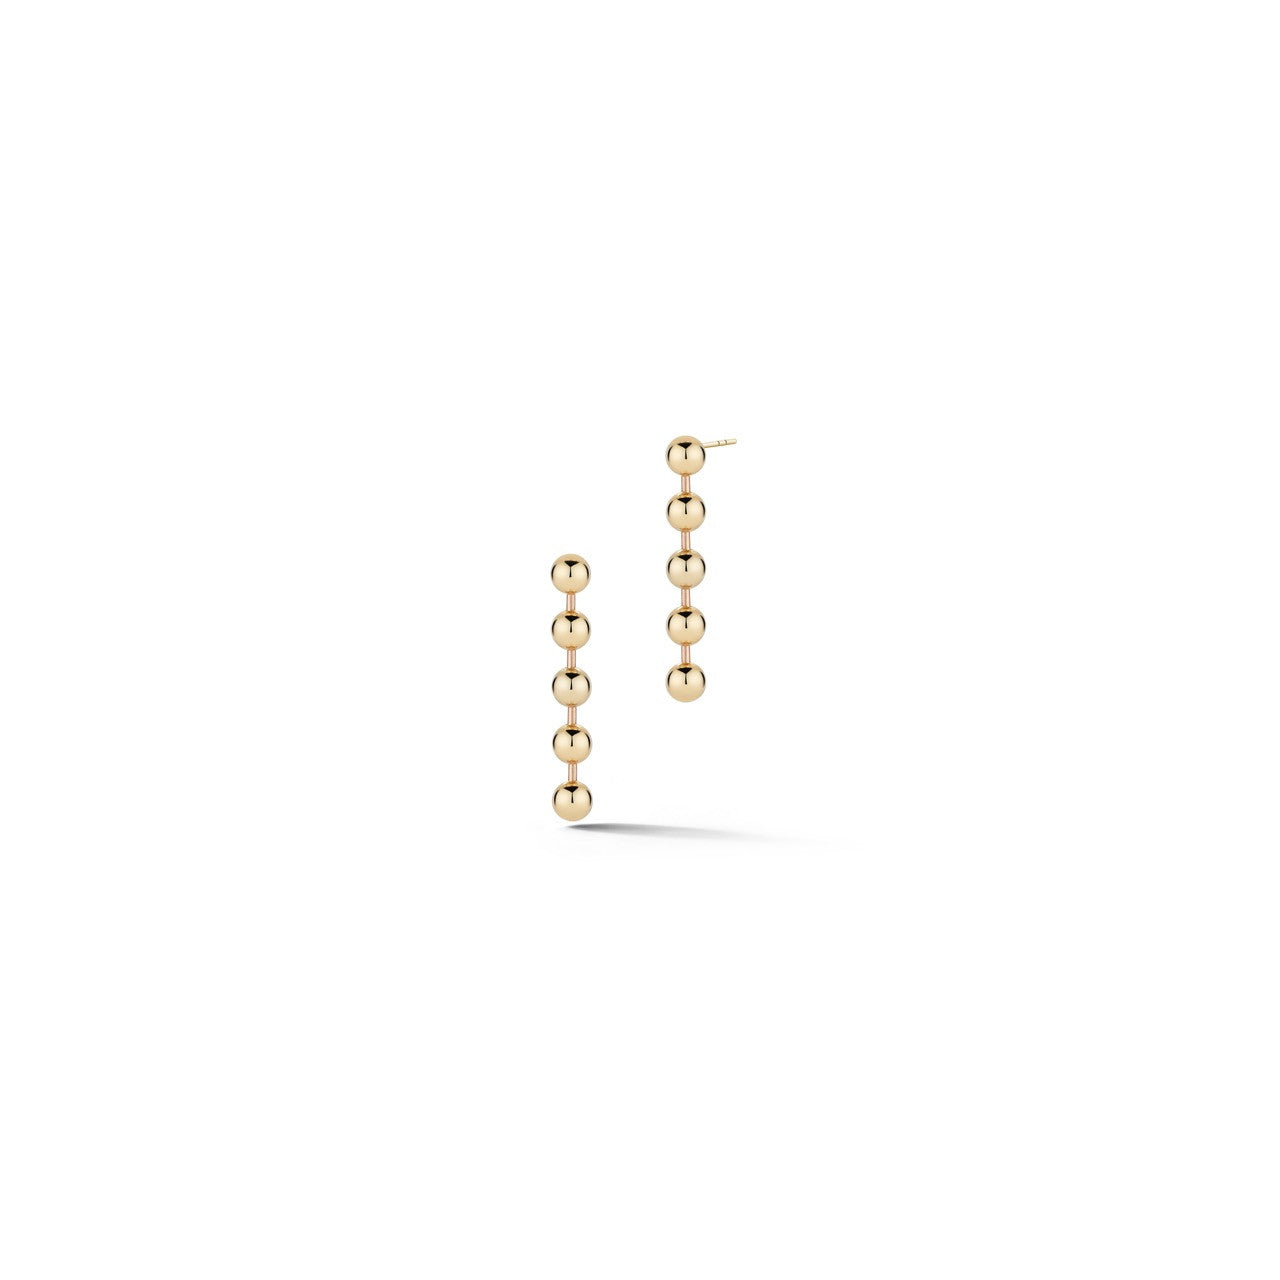 everyday short 14k yellow gold ball chain dangle earrings by finn by candice pool neistat